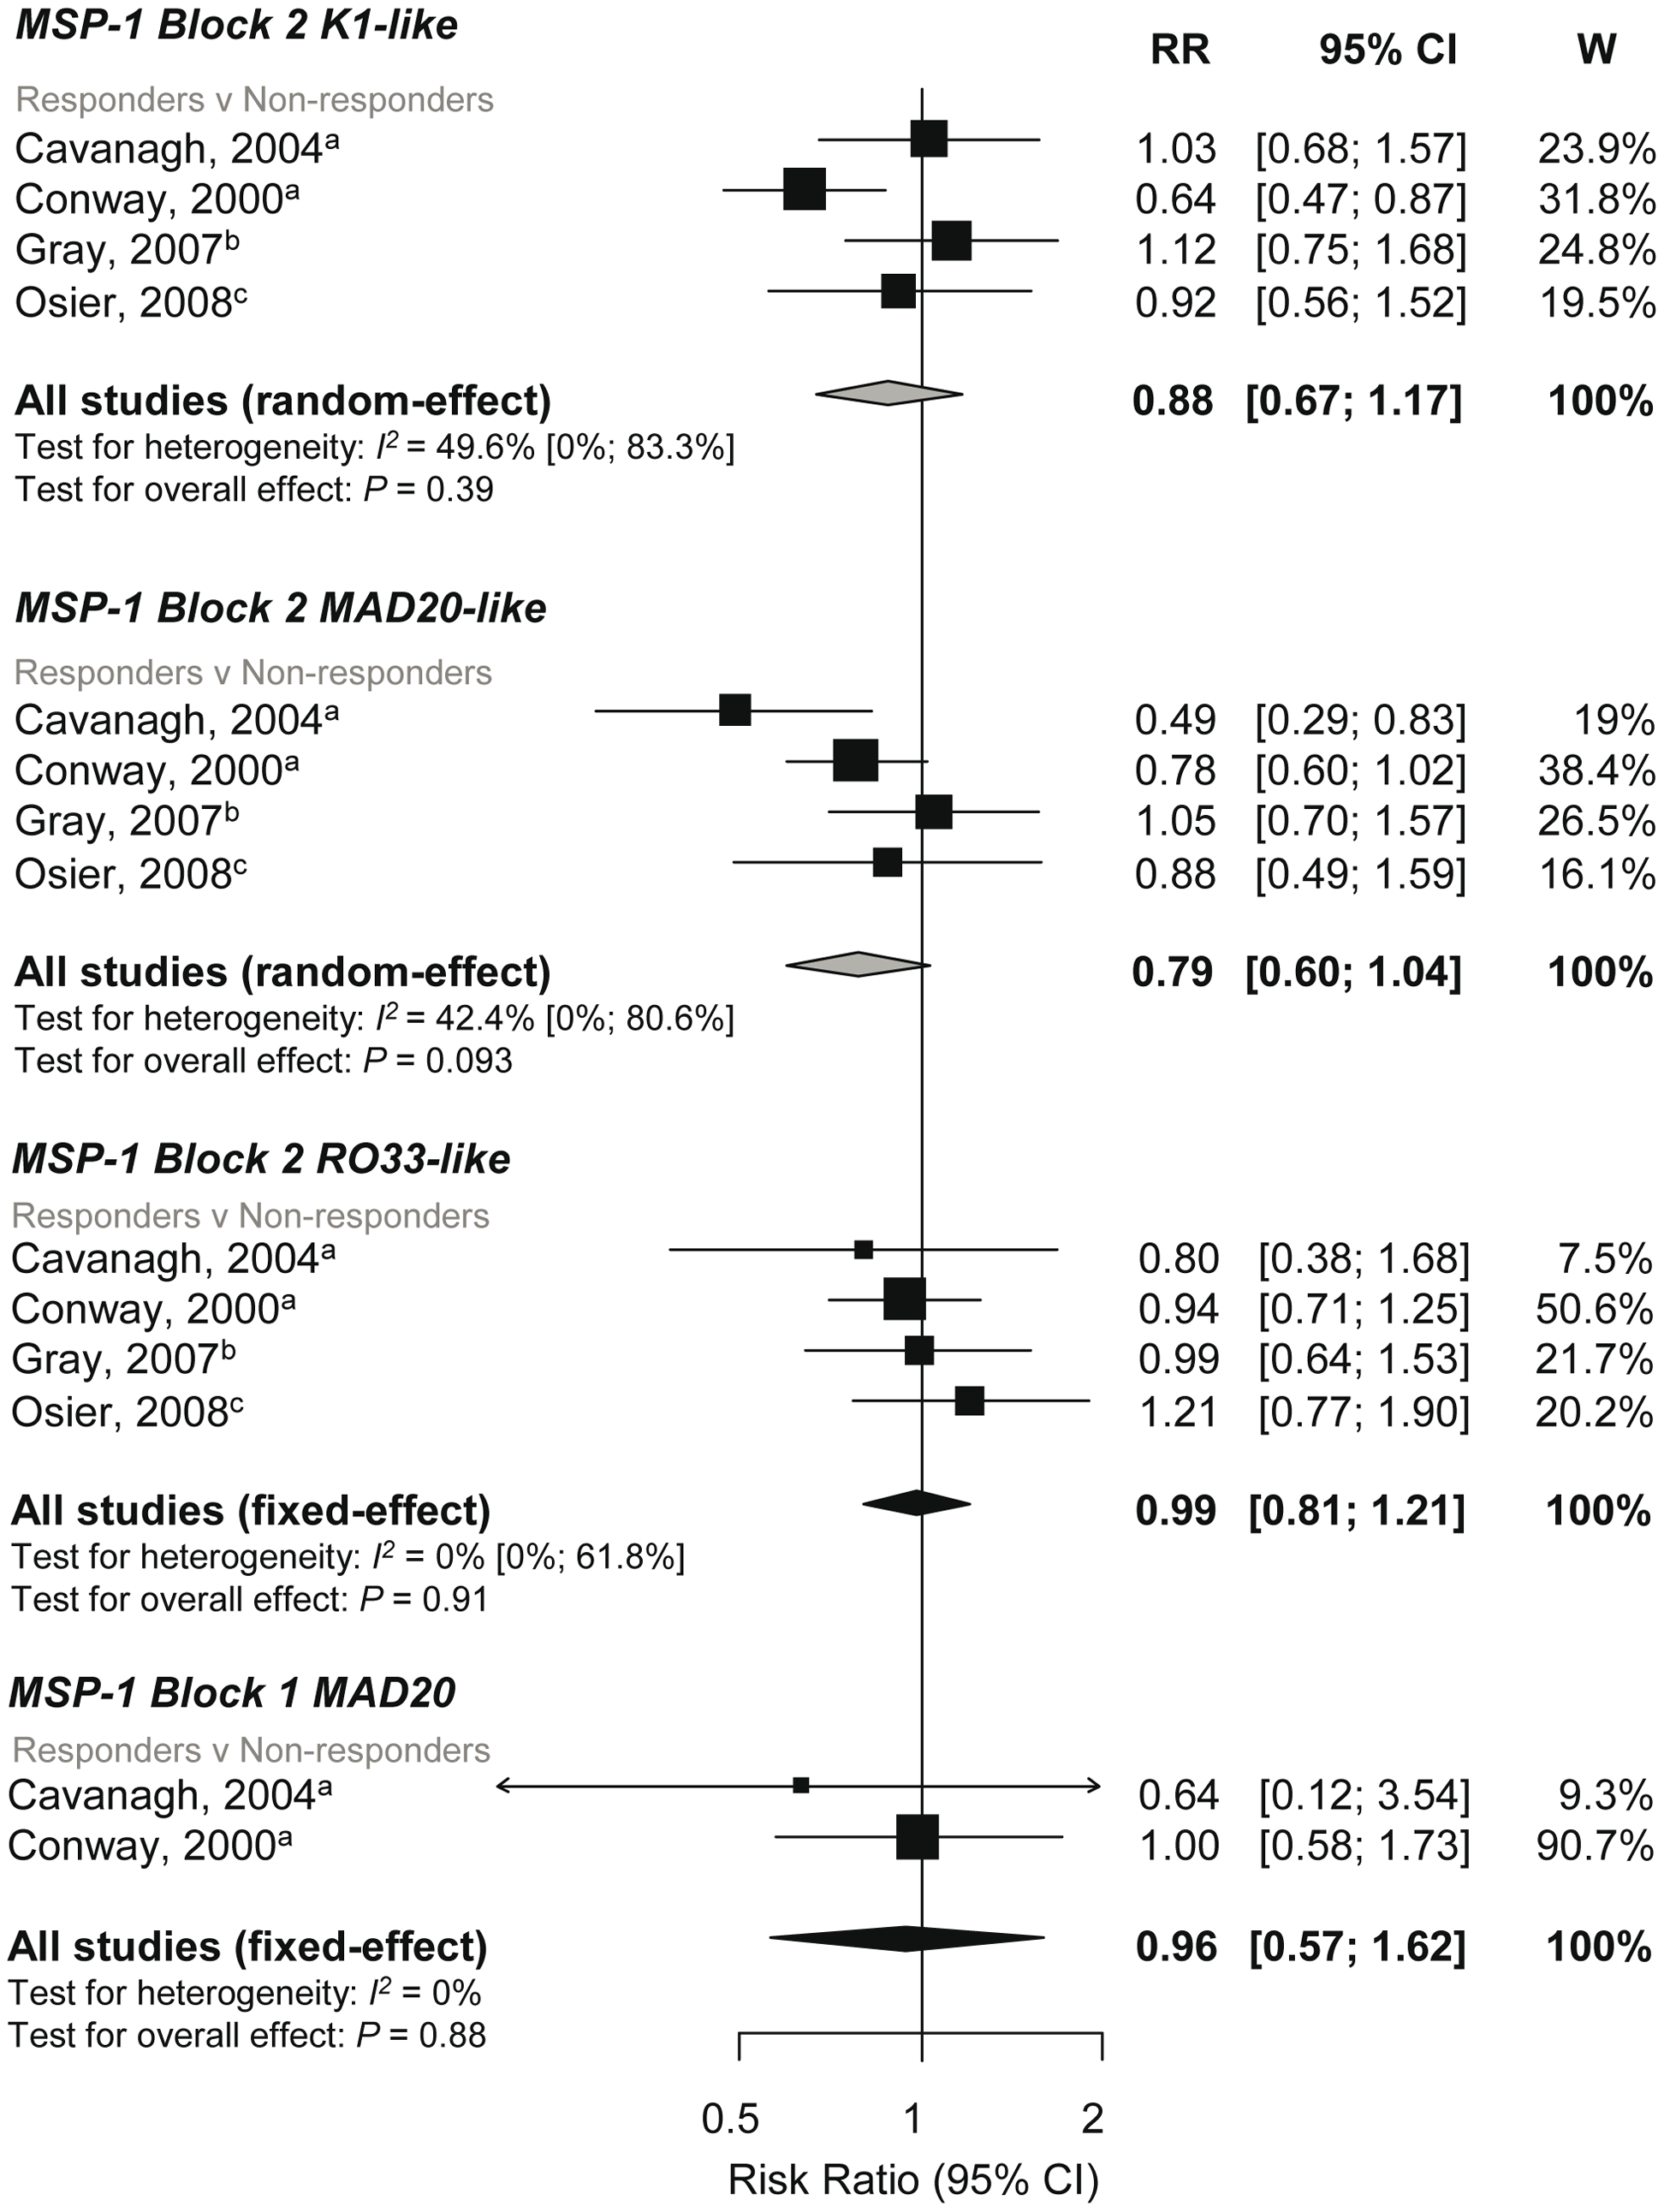 Forest plot of the association of MSP-1 block 2 and block 1 responses with incidence of symptomatic <i>P. falciparum</i> malaria.